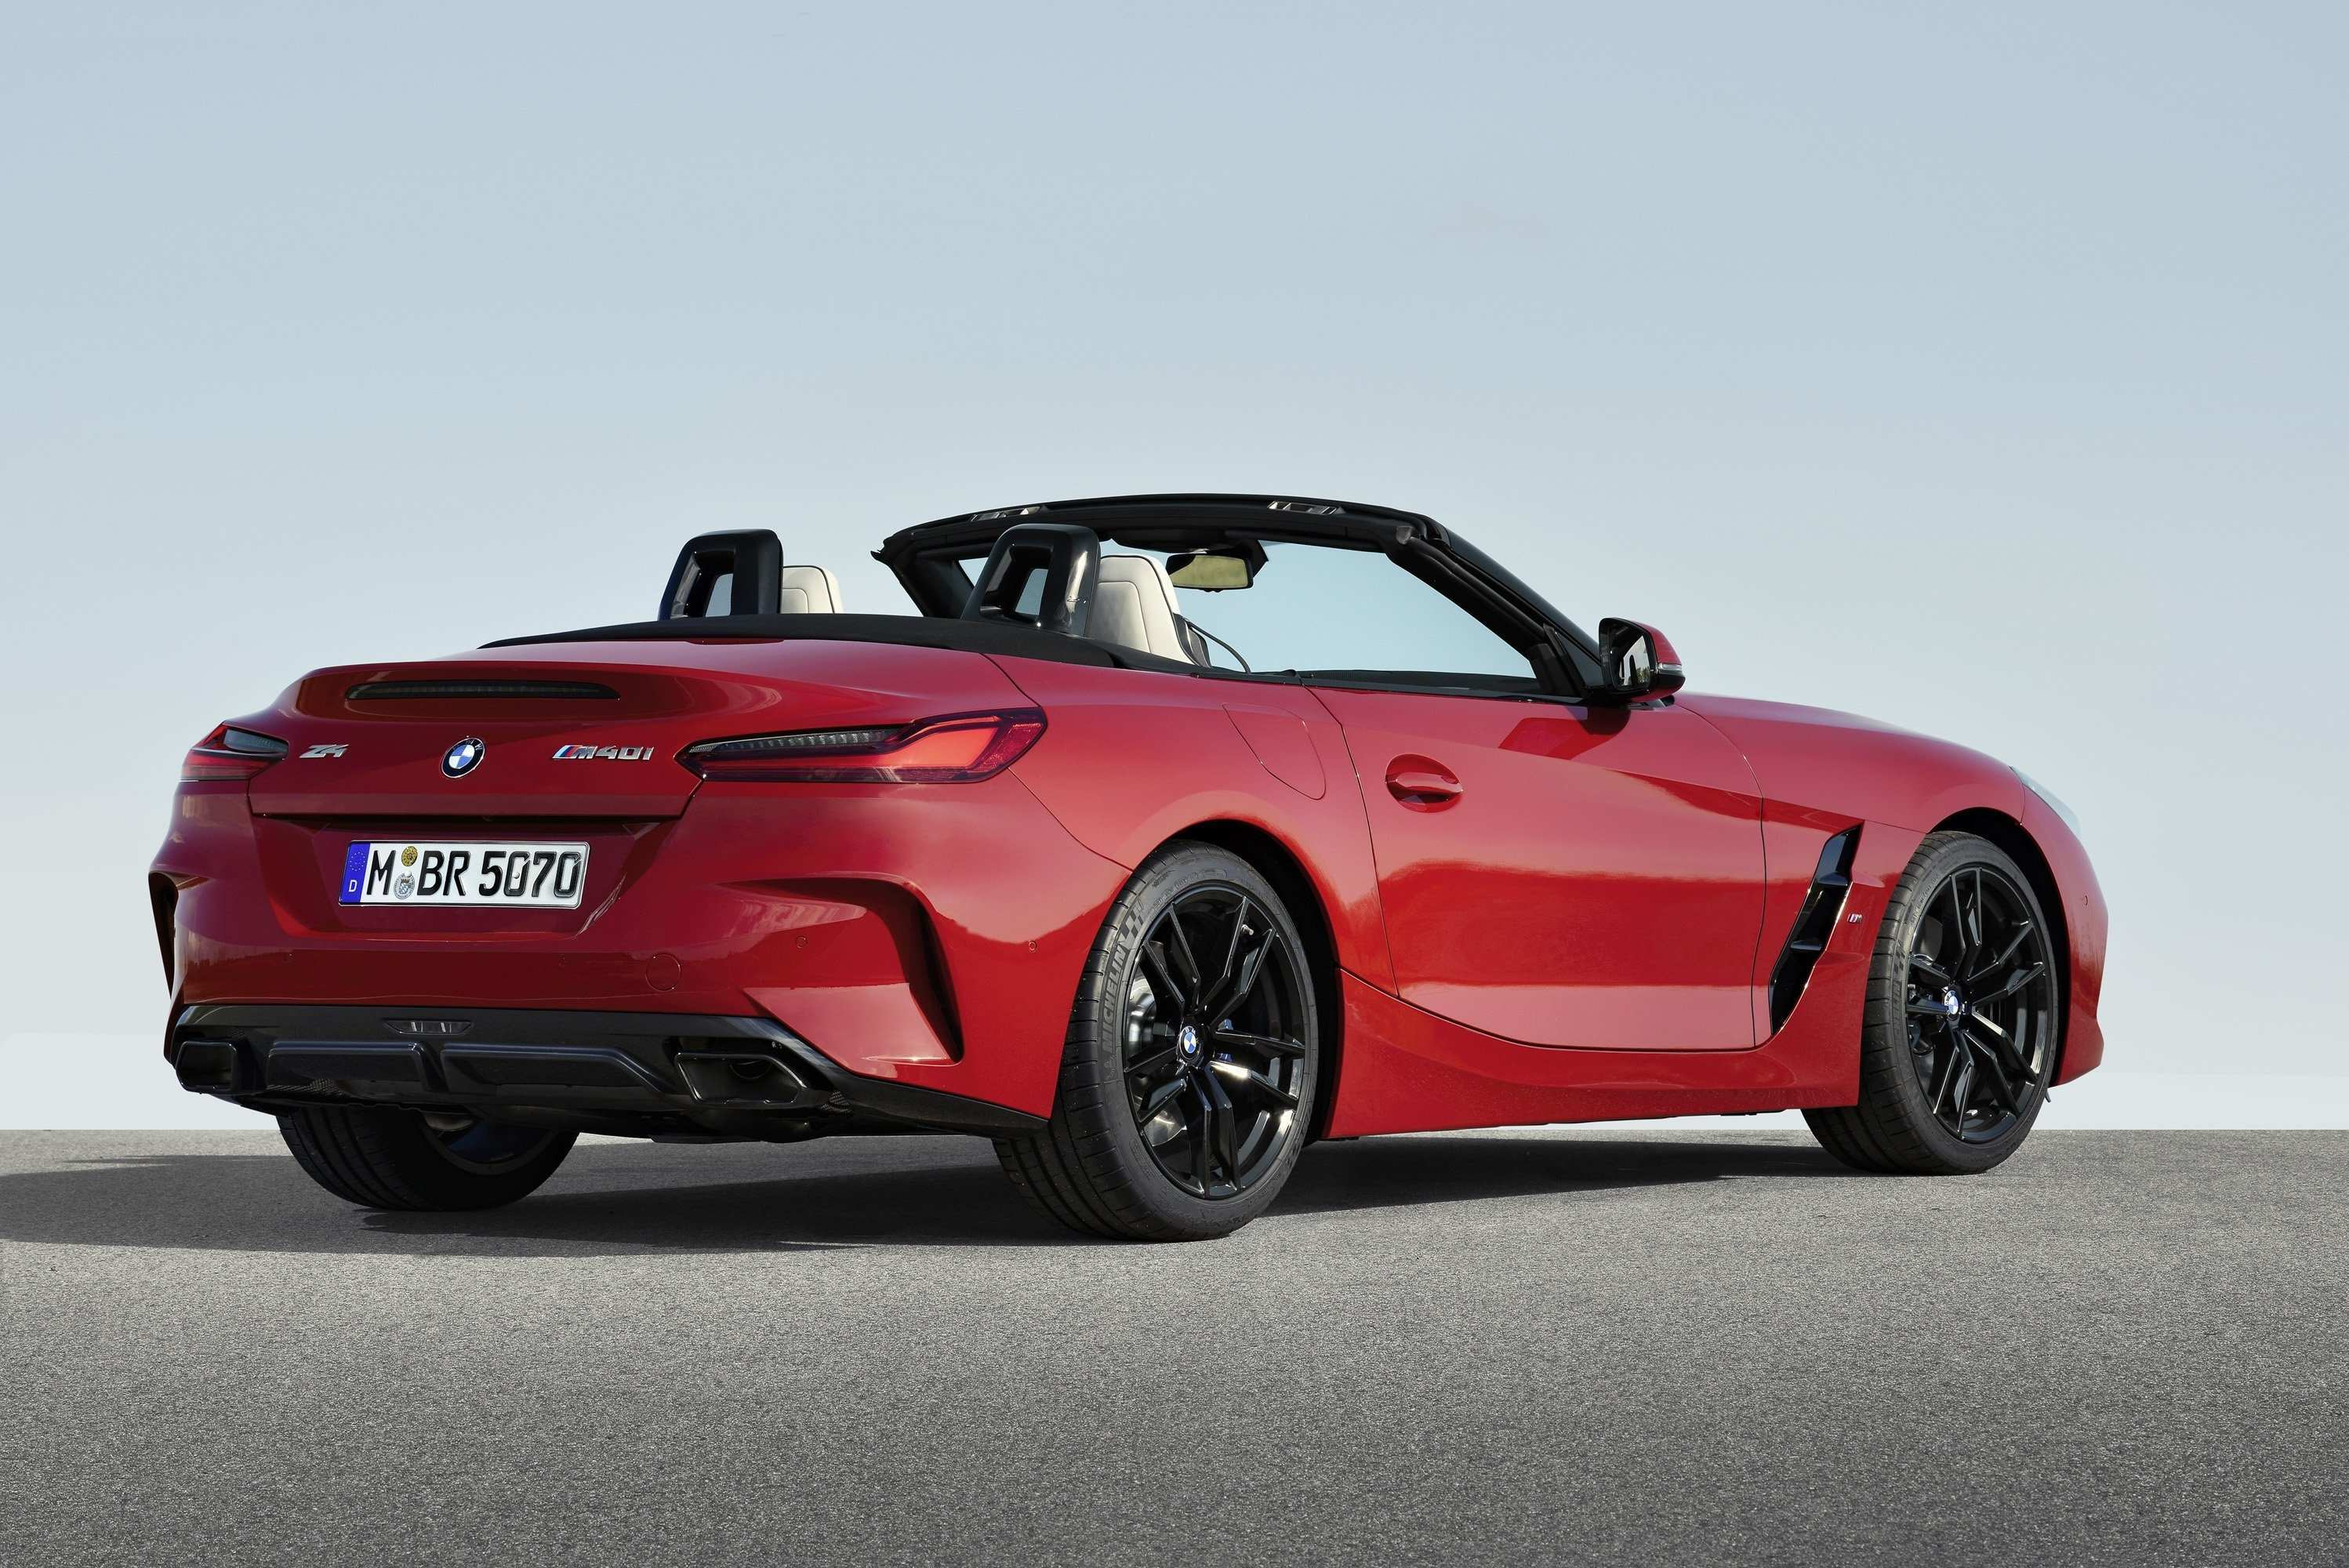 23 All New New Bmw Z4 2019 Release Date Review And Specs Images for New Bmw Z4 2019 Release Date Review And Specs